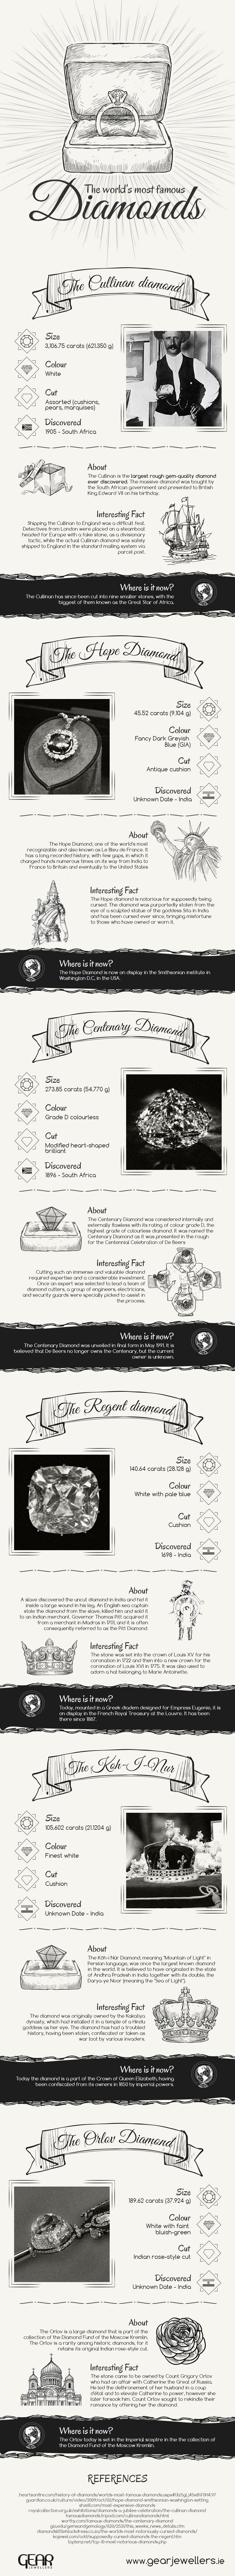 The world's most famous diamonds - Infographic